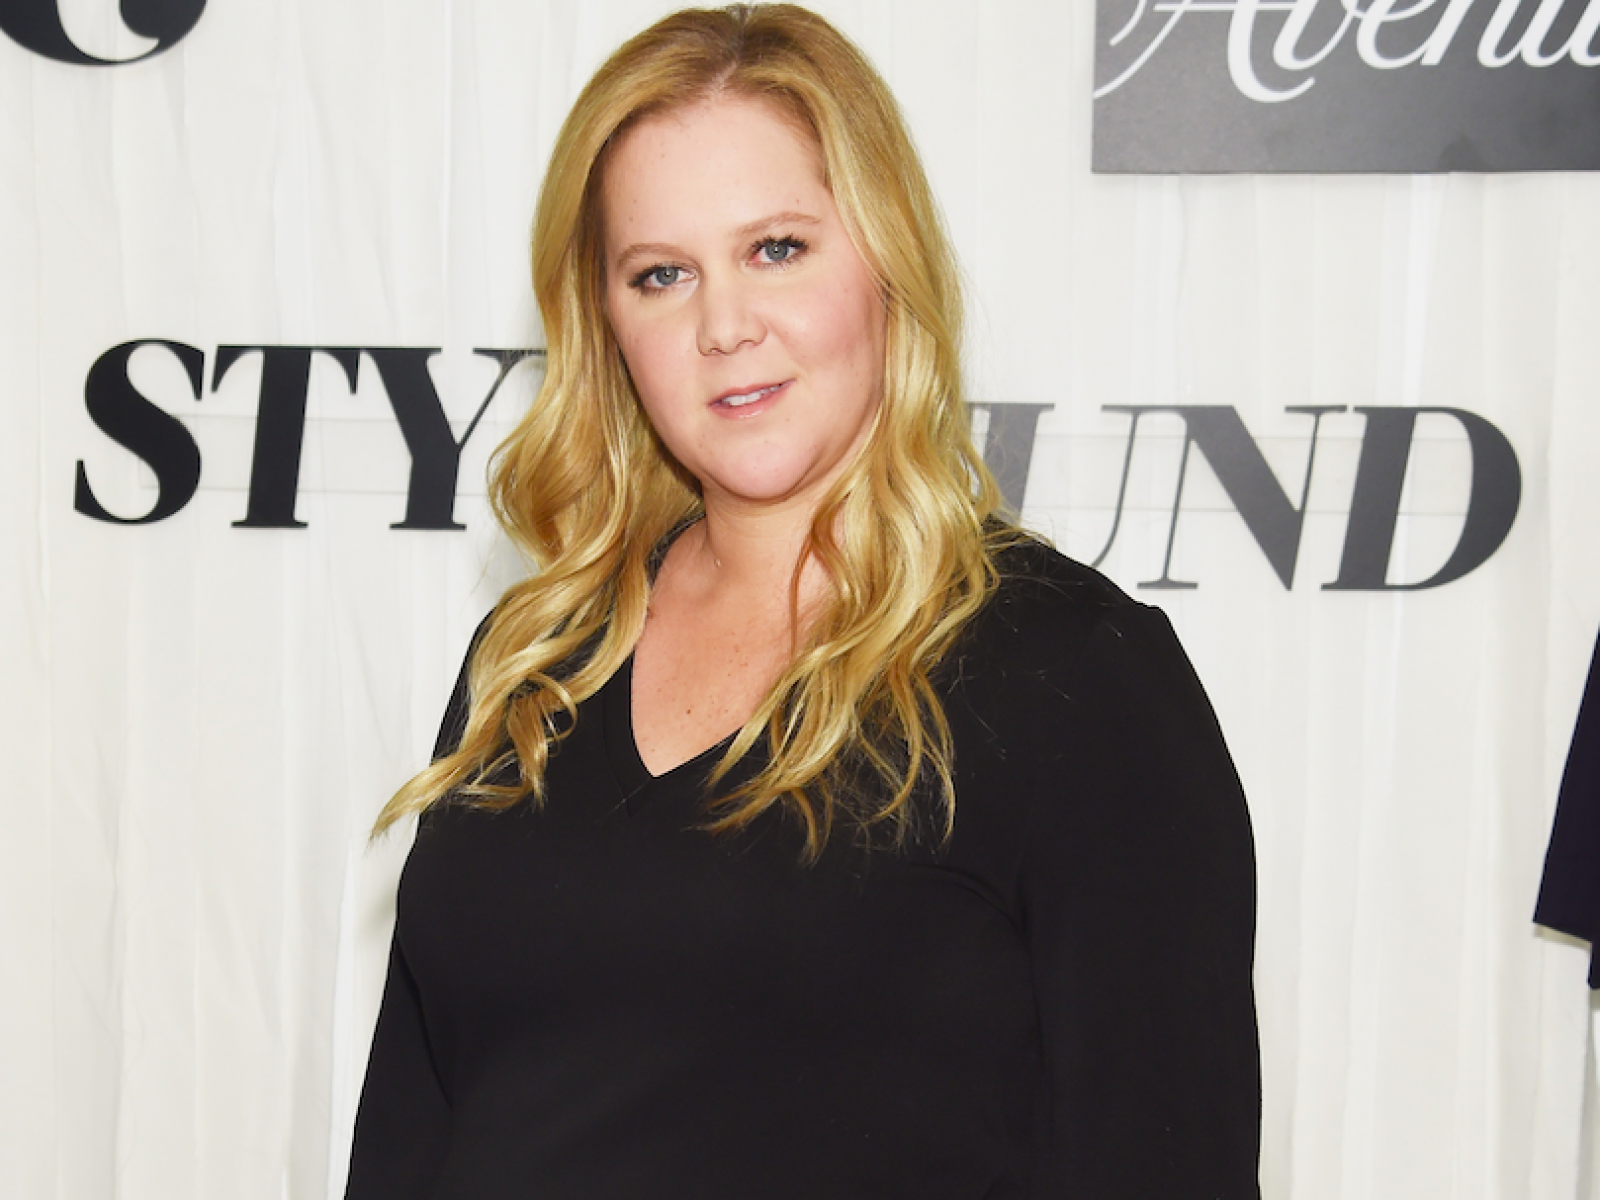 Who Is Amy Schumer's Husband? Comedian Reveals Husband Chris Fischer.